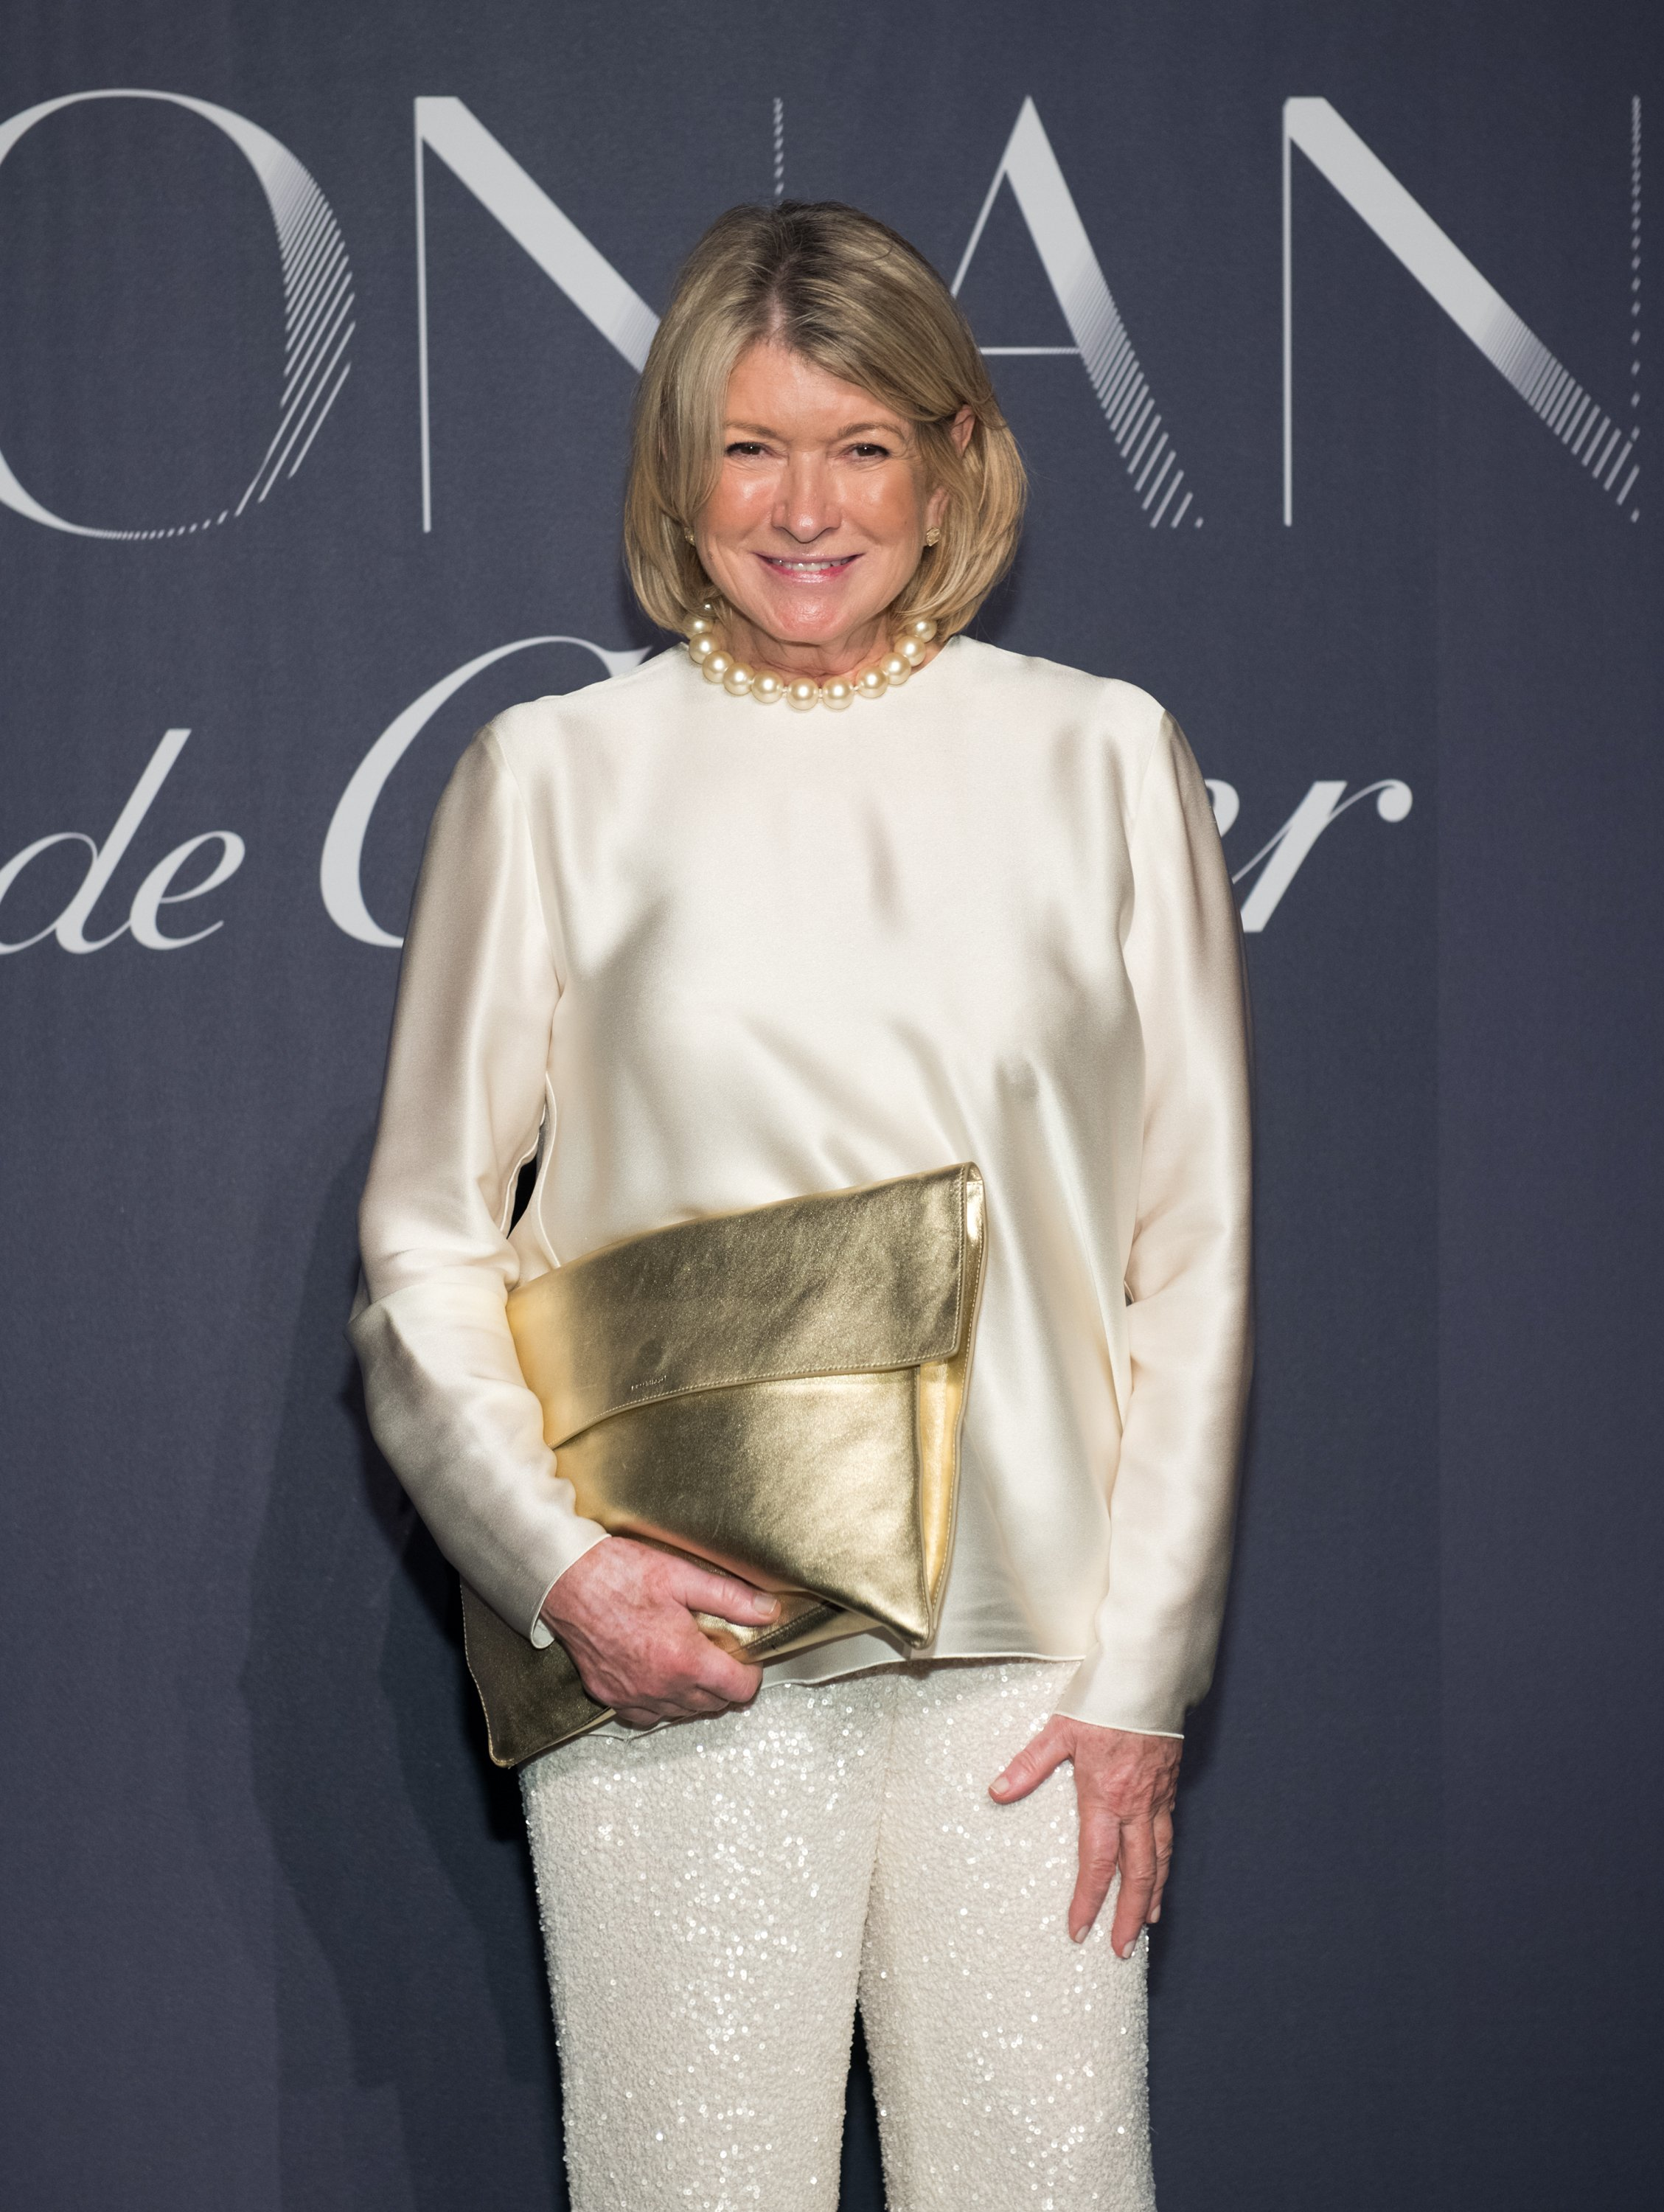 Martha Stewart during a 2017 exhibit in New York City. | Photo: Getty Images